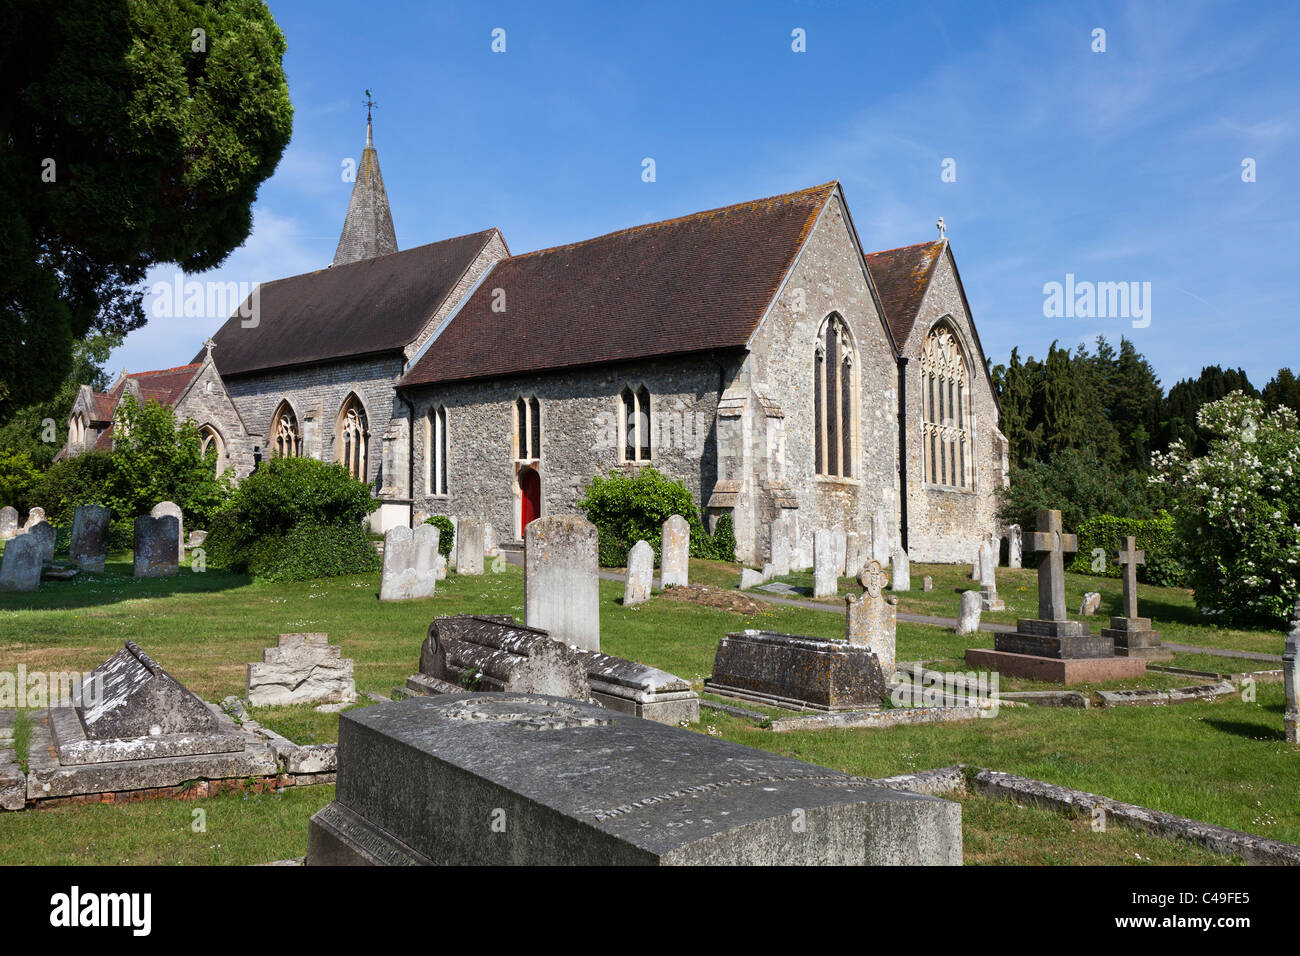 St Peter's Church Titchfield Wilfrid's Saxon Church Hampshire graves graveyard grave stone English England Old - Stock Image